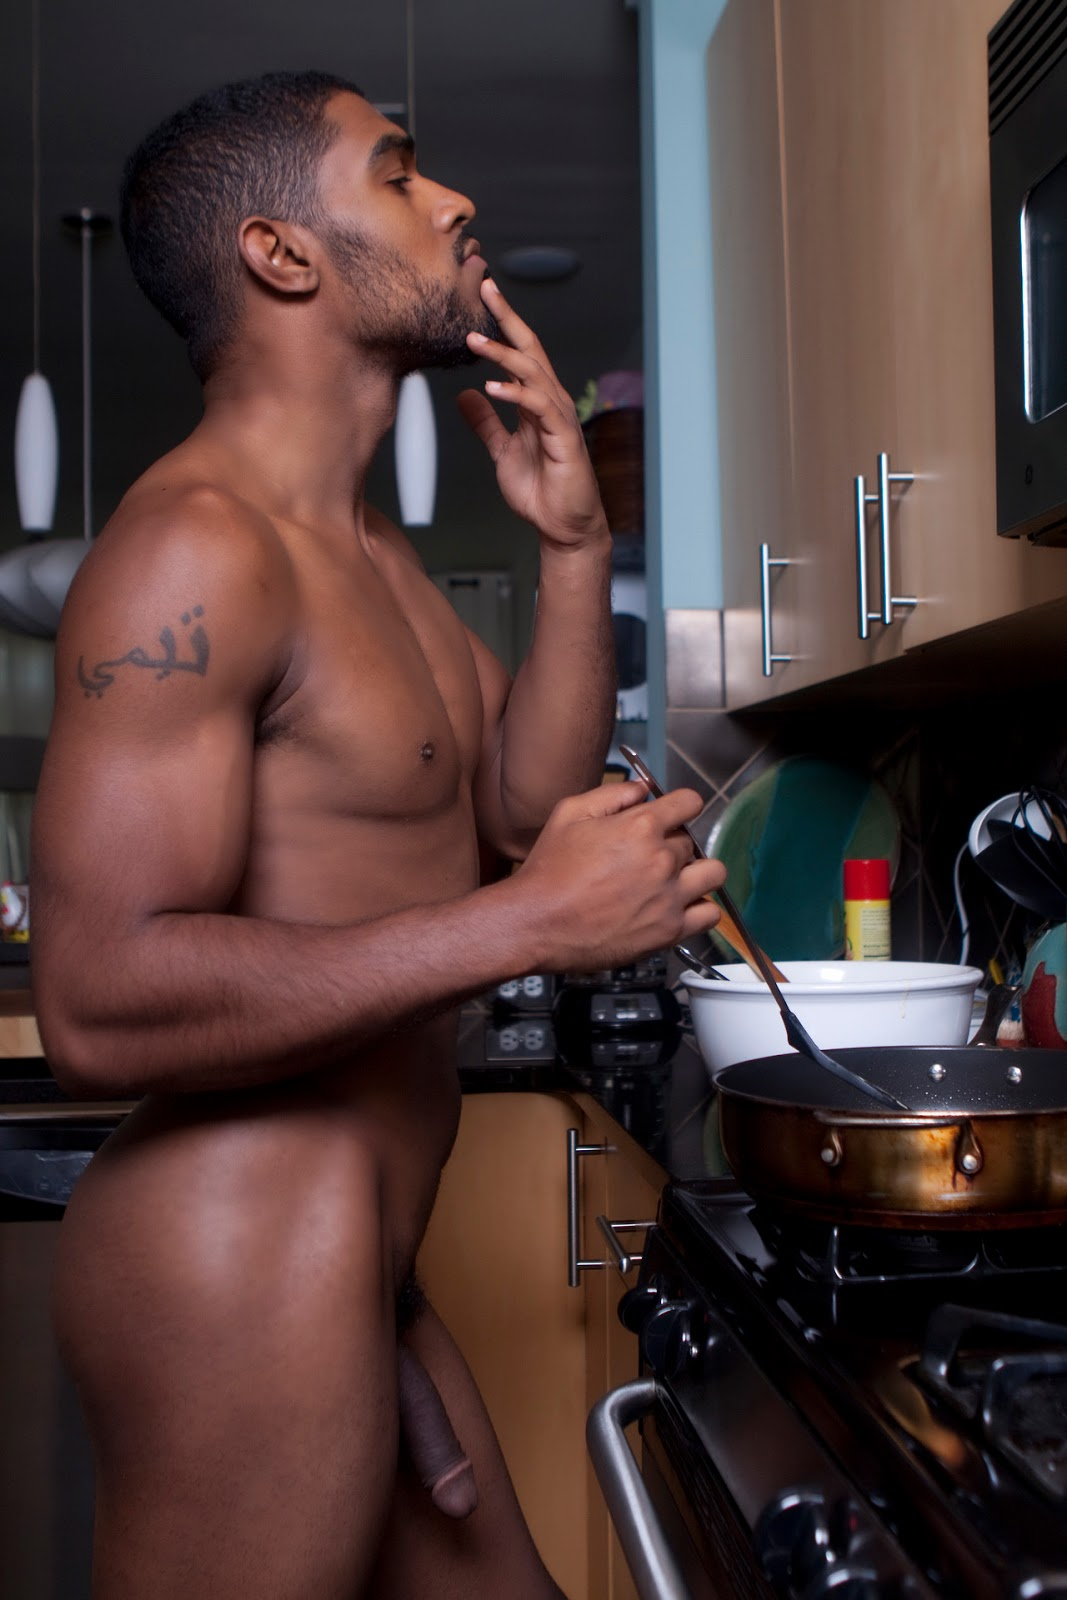 Nude male housework